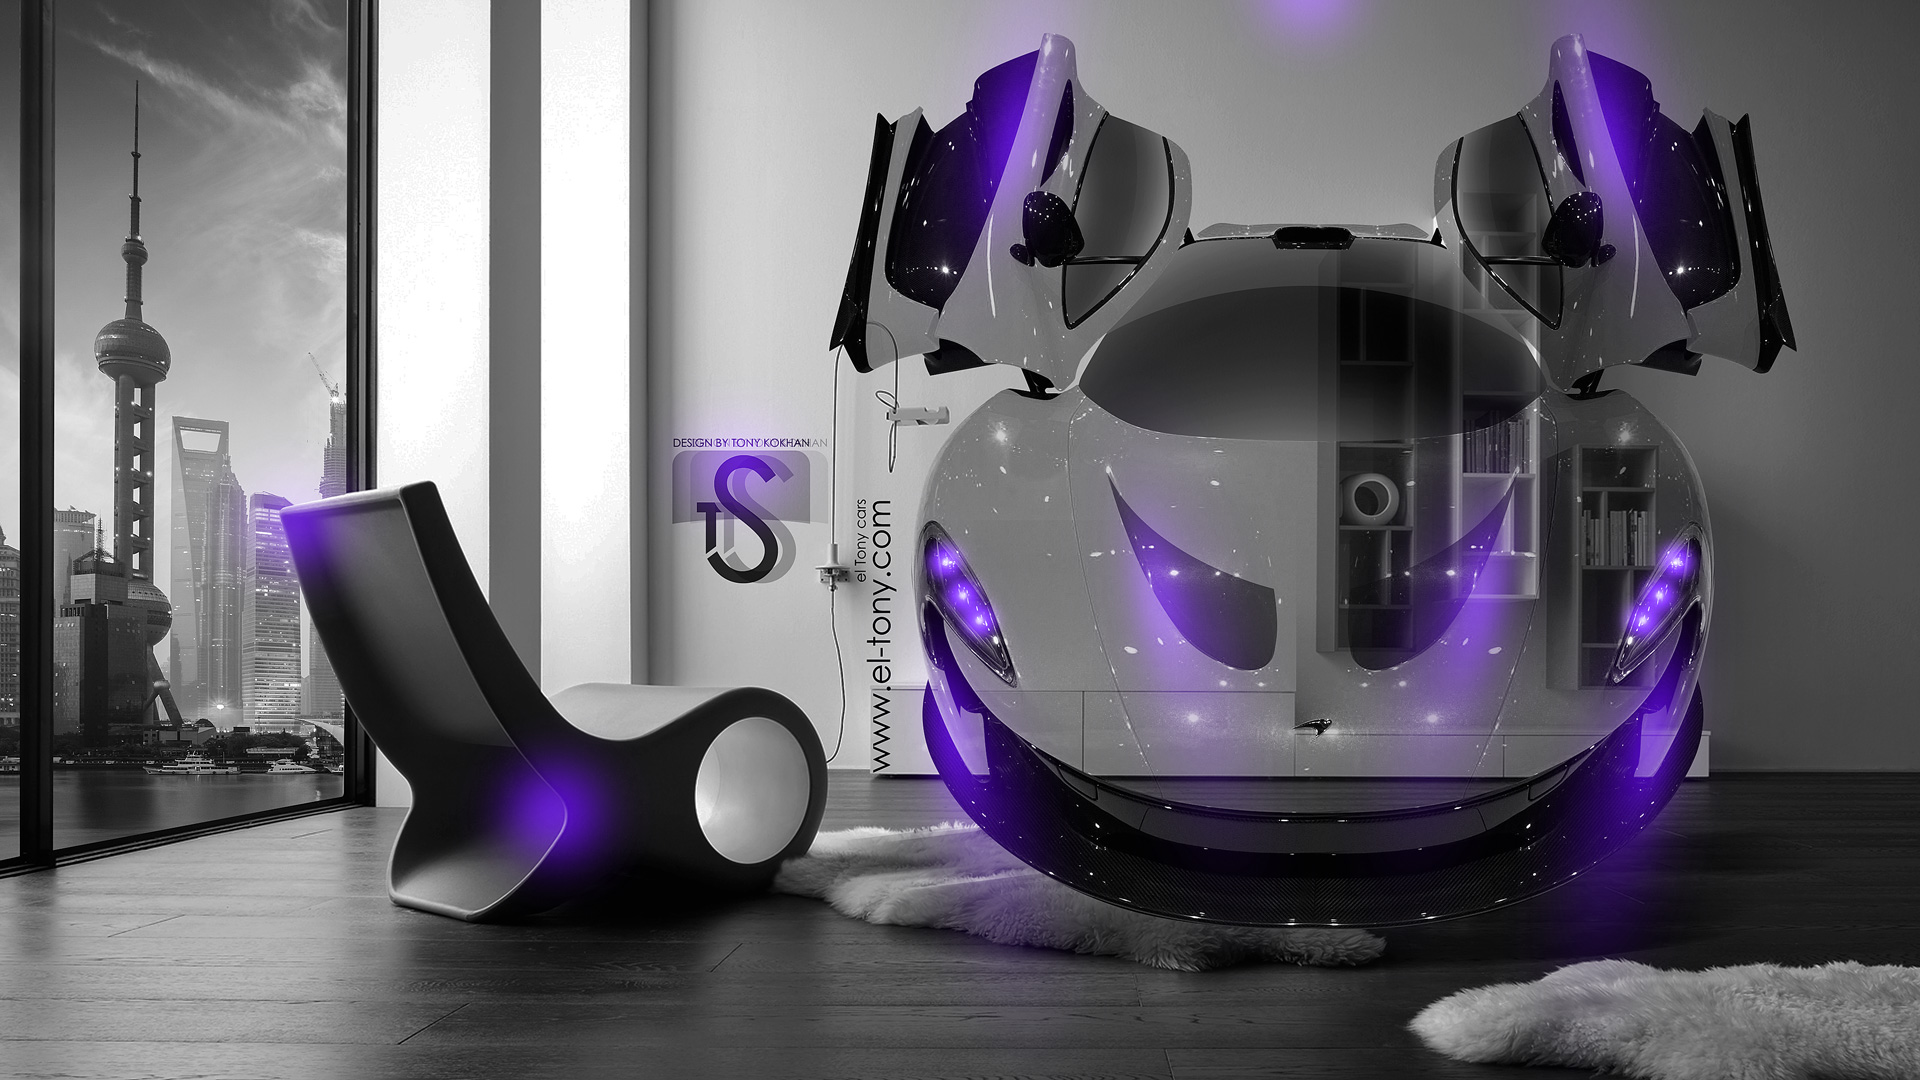 Charmant McLaren P1 Crystal Home Fly Car 2014 Violet